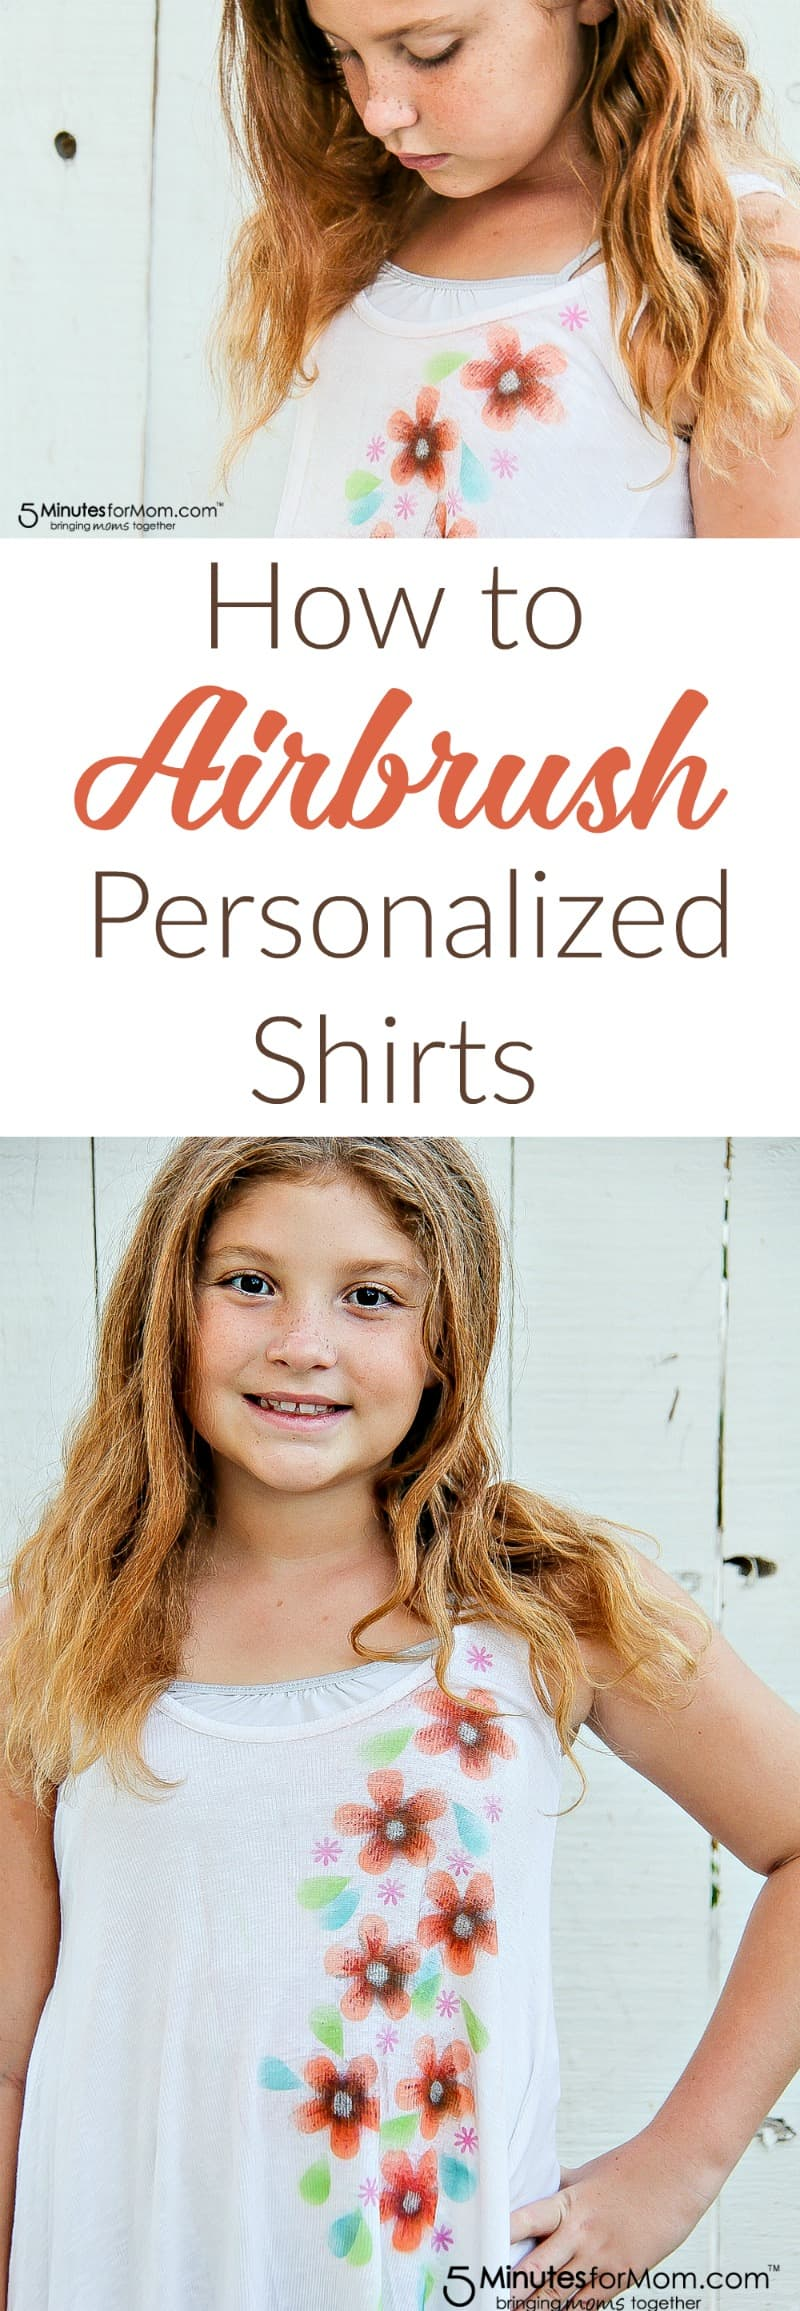 How to airbrush personalized shirts